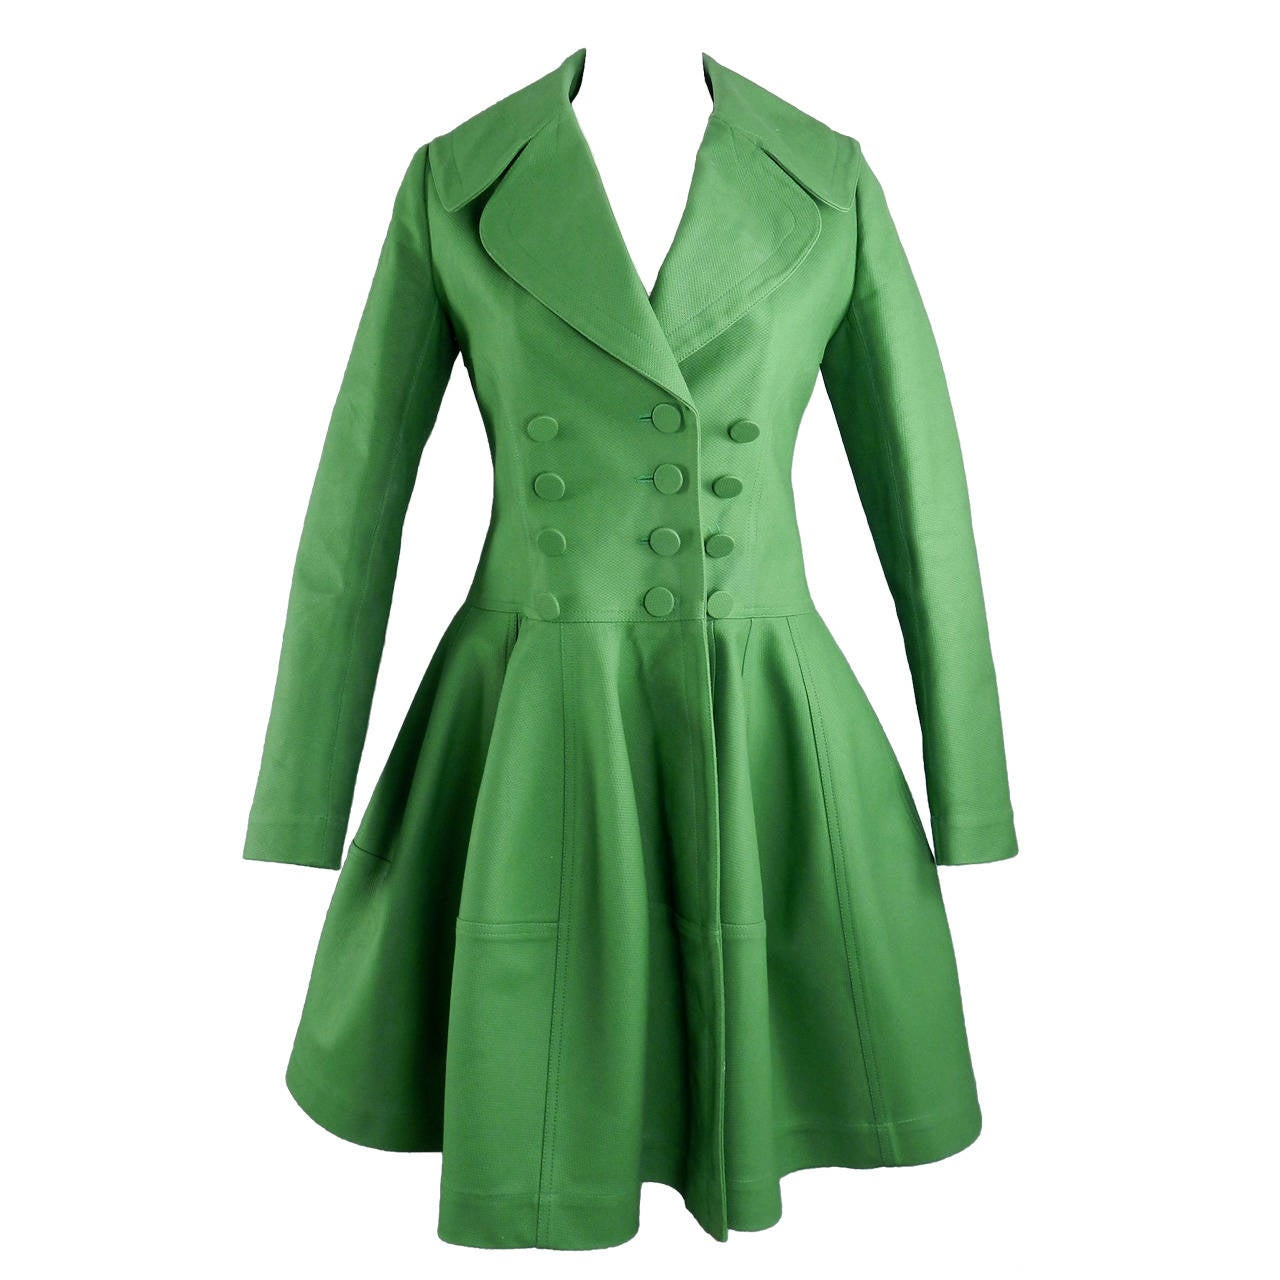 Alaia Spring Green Cotton Structured Coat 1